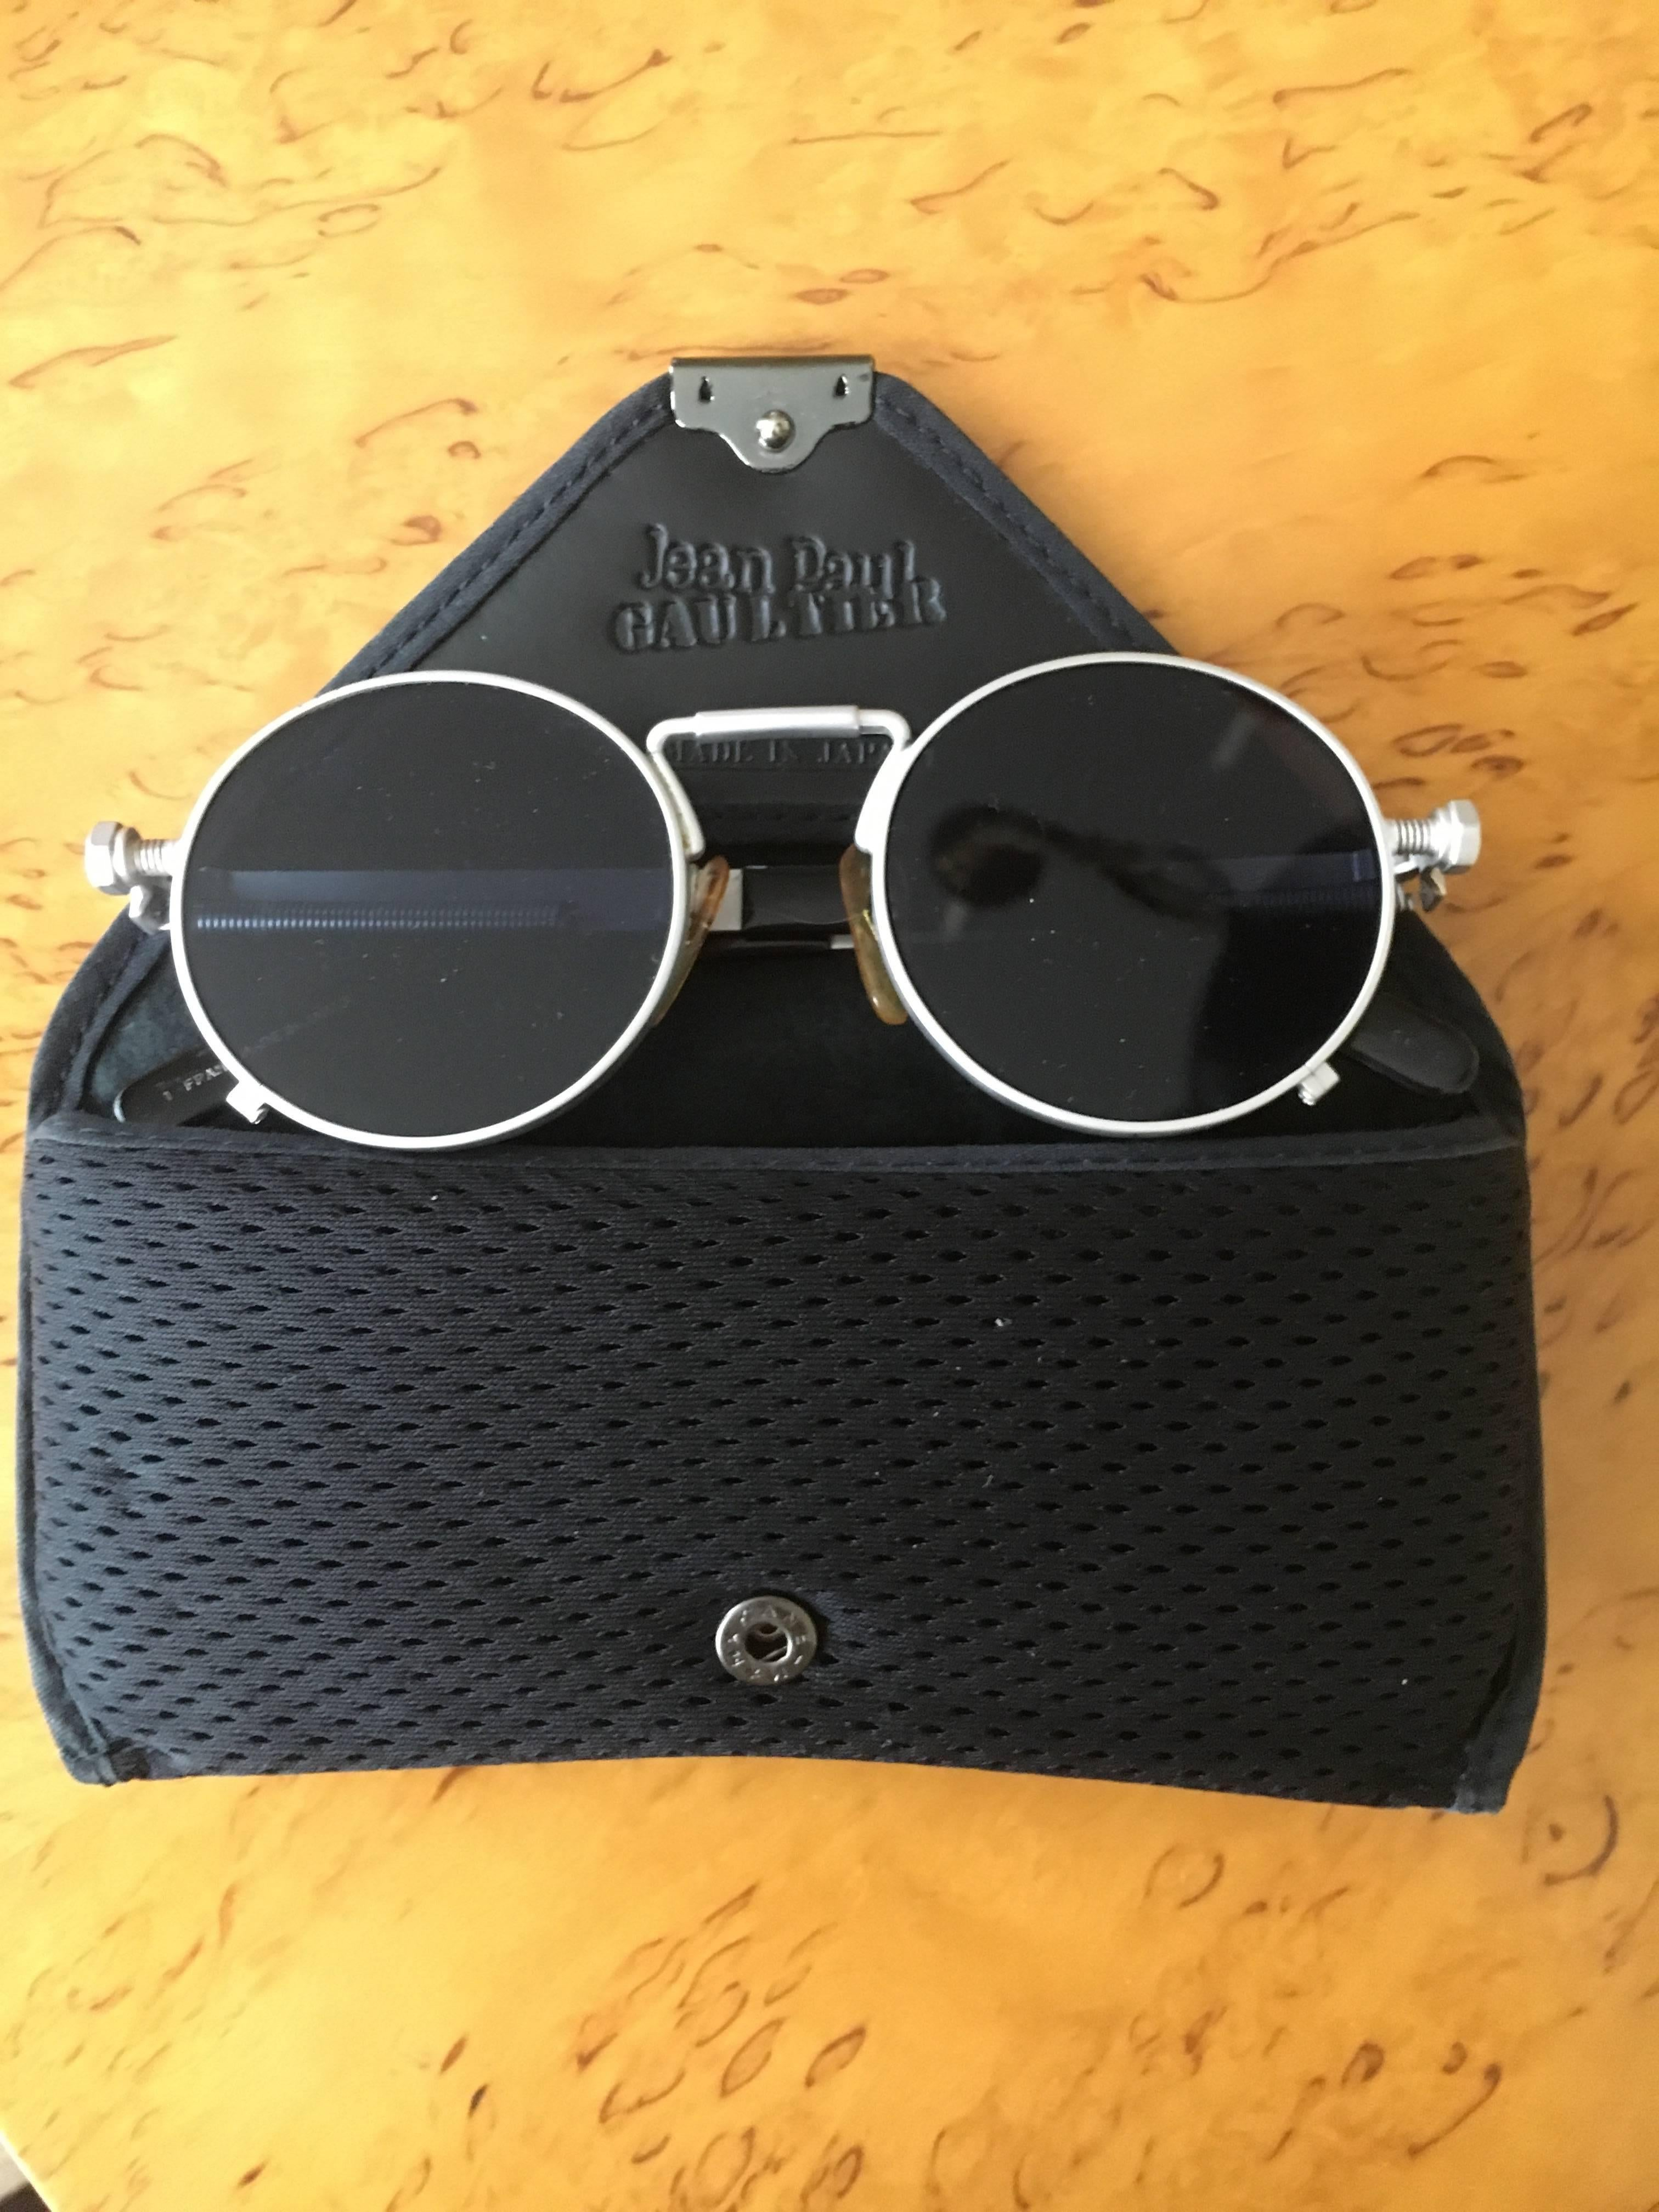 fe6f0a90085 Jean Paul Gaultier Matte Silver Round Sunglasses 56-8171 Japan with Case  For Sale at 1stdibs